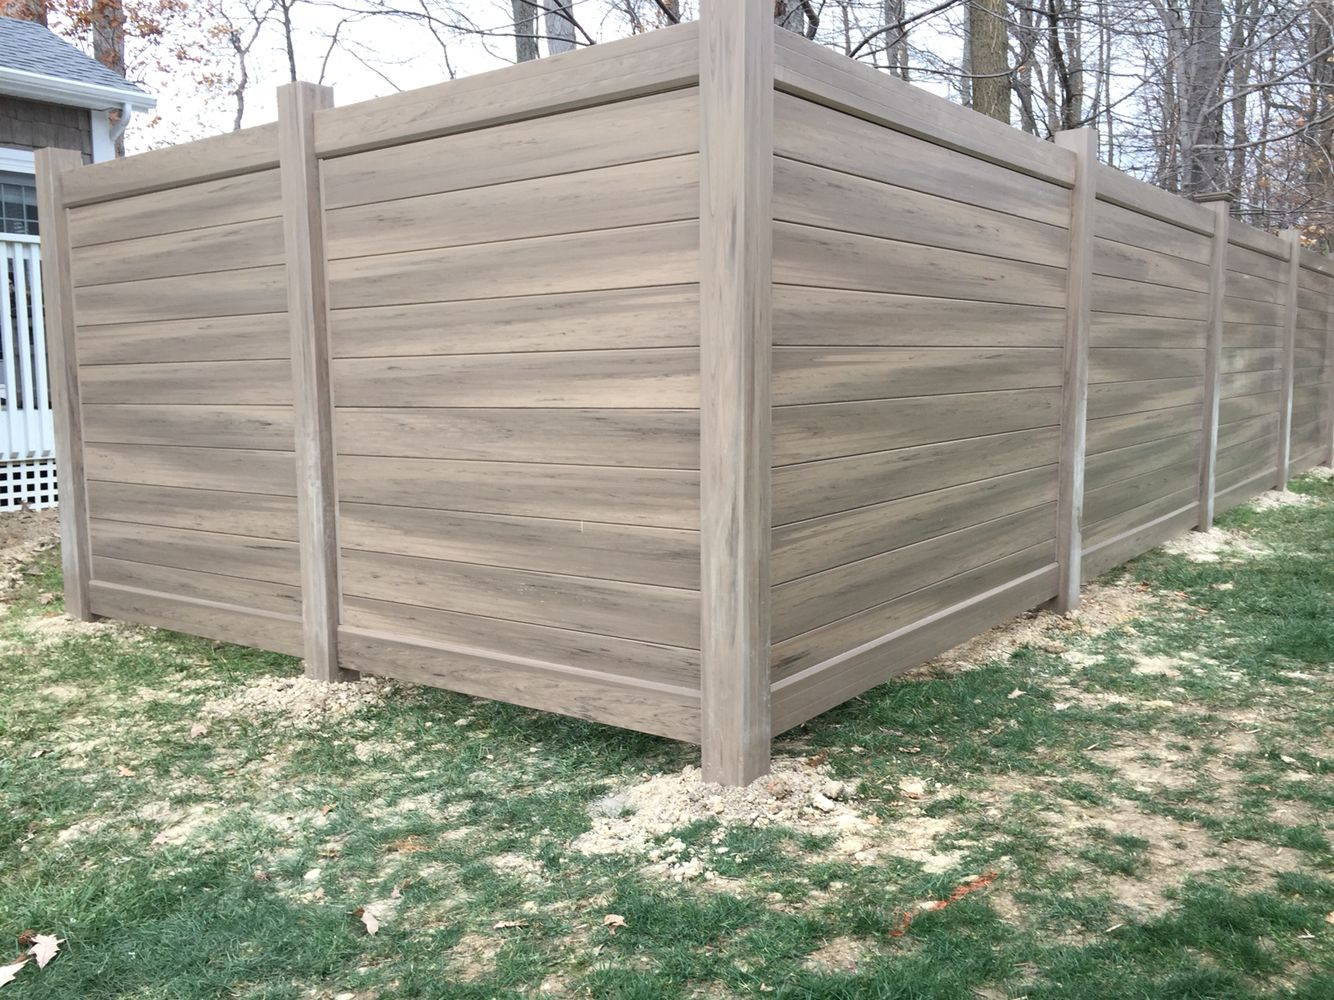 Vinyl fence colors yahoo image search results garden ideas our new style of privacy fence 6 green teak pickets that we ran horizontally baanklon Choice Image